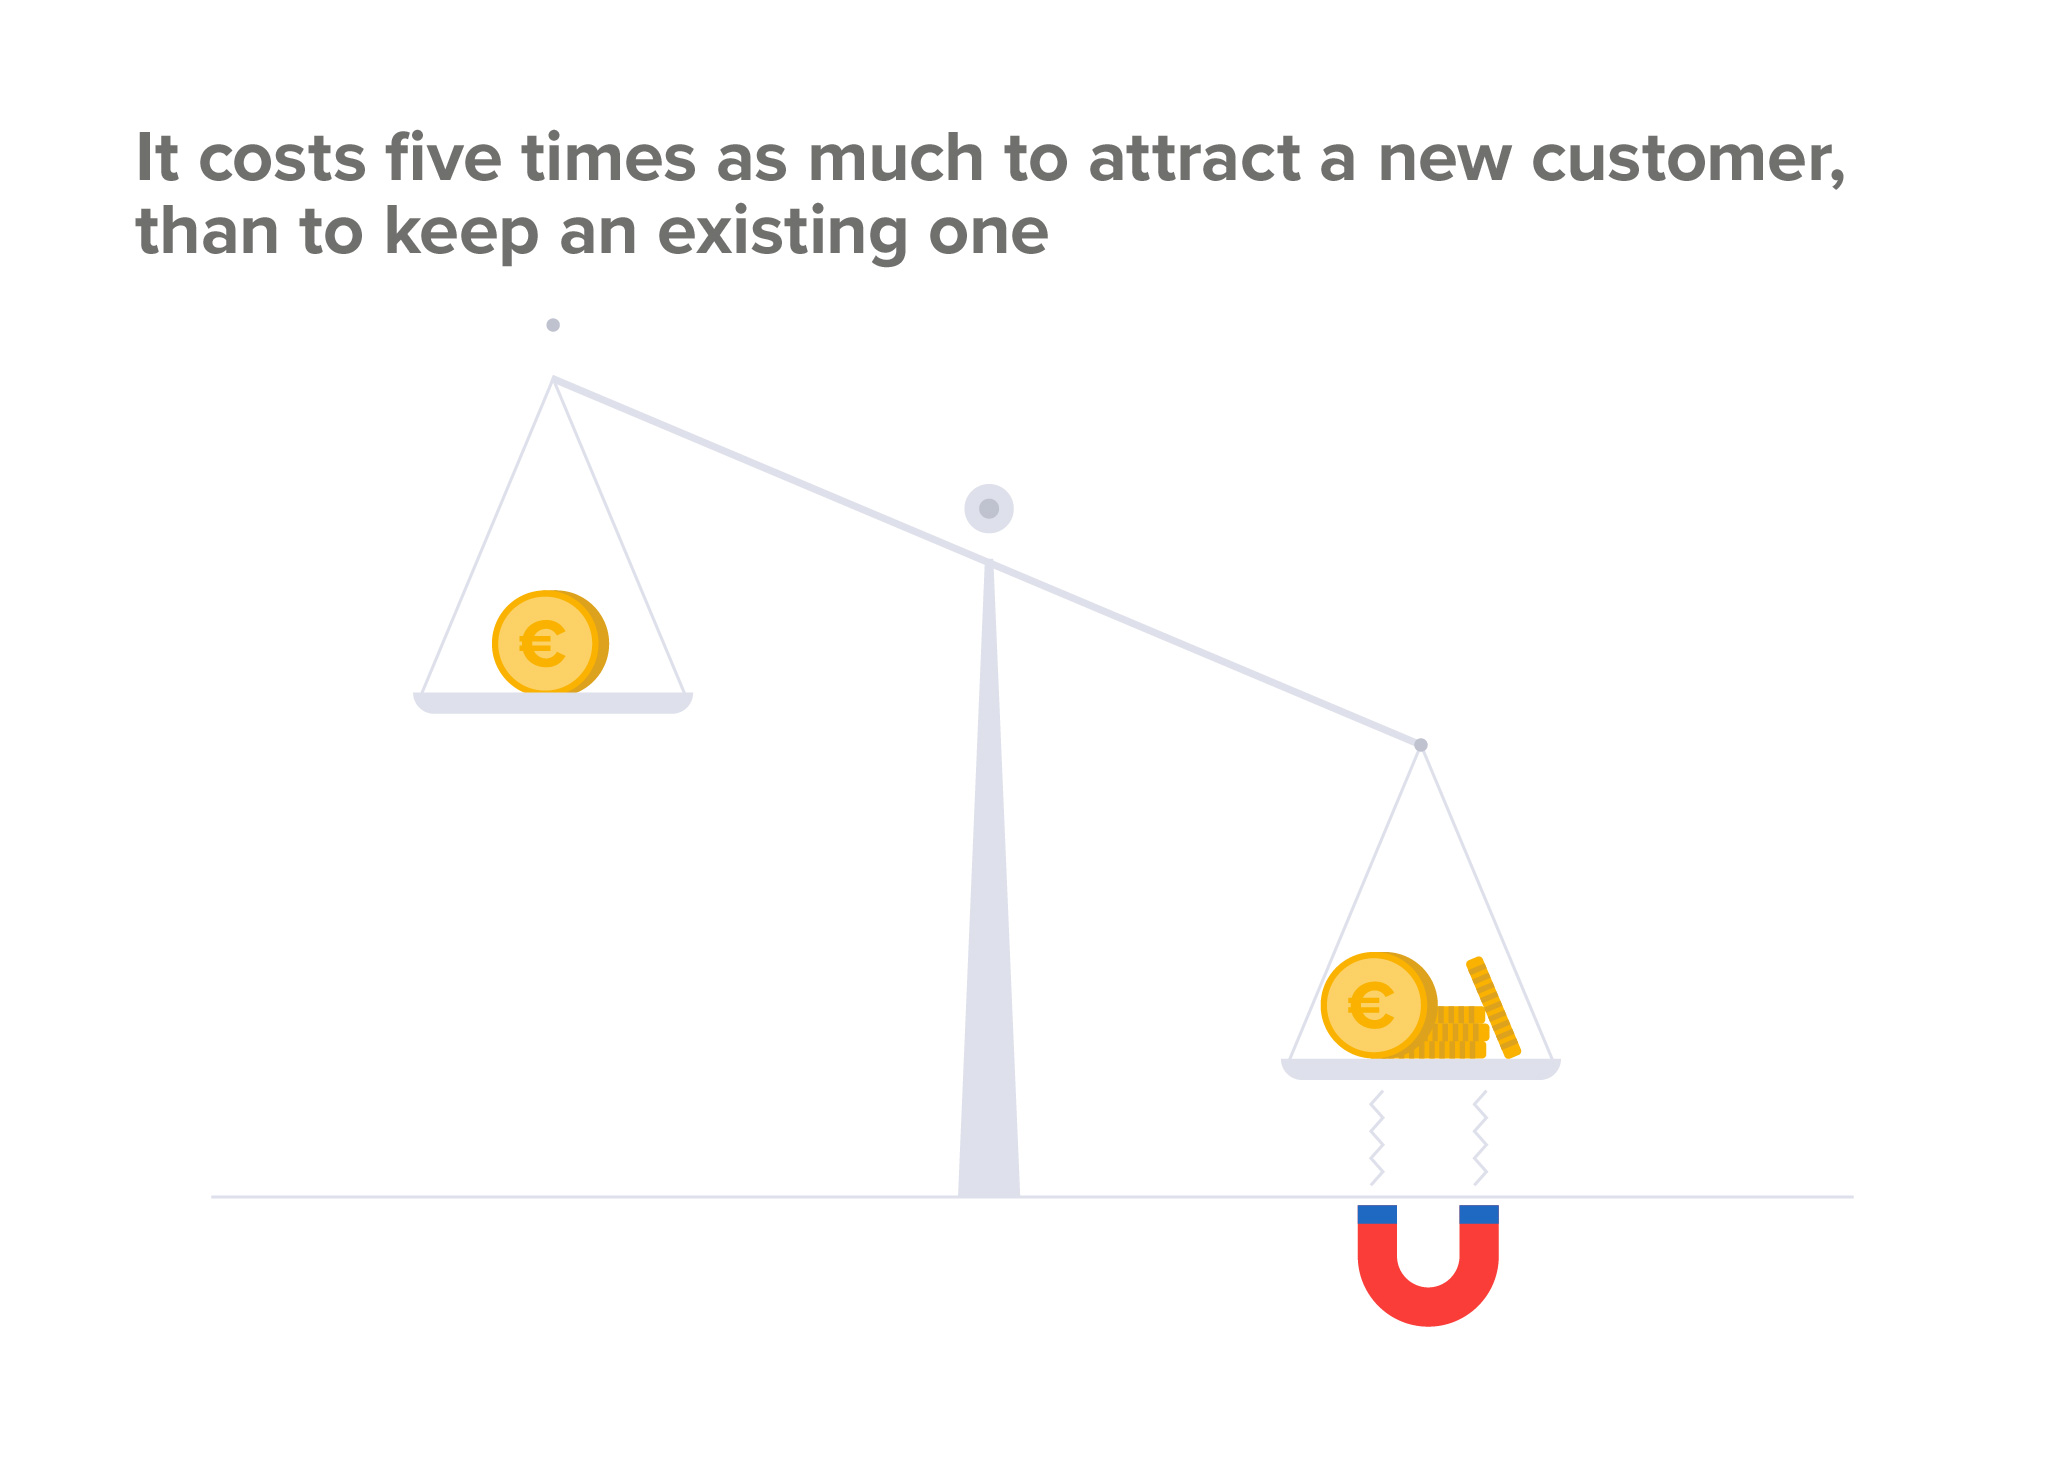 customer acquisition costs compared to retention costs